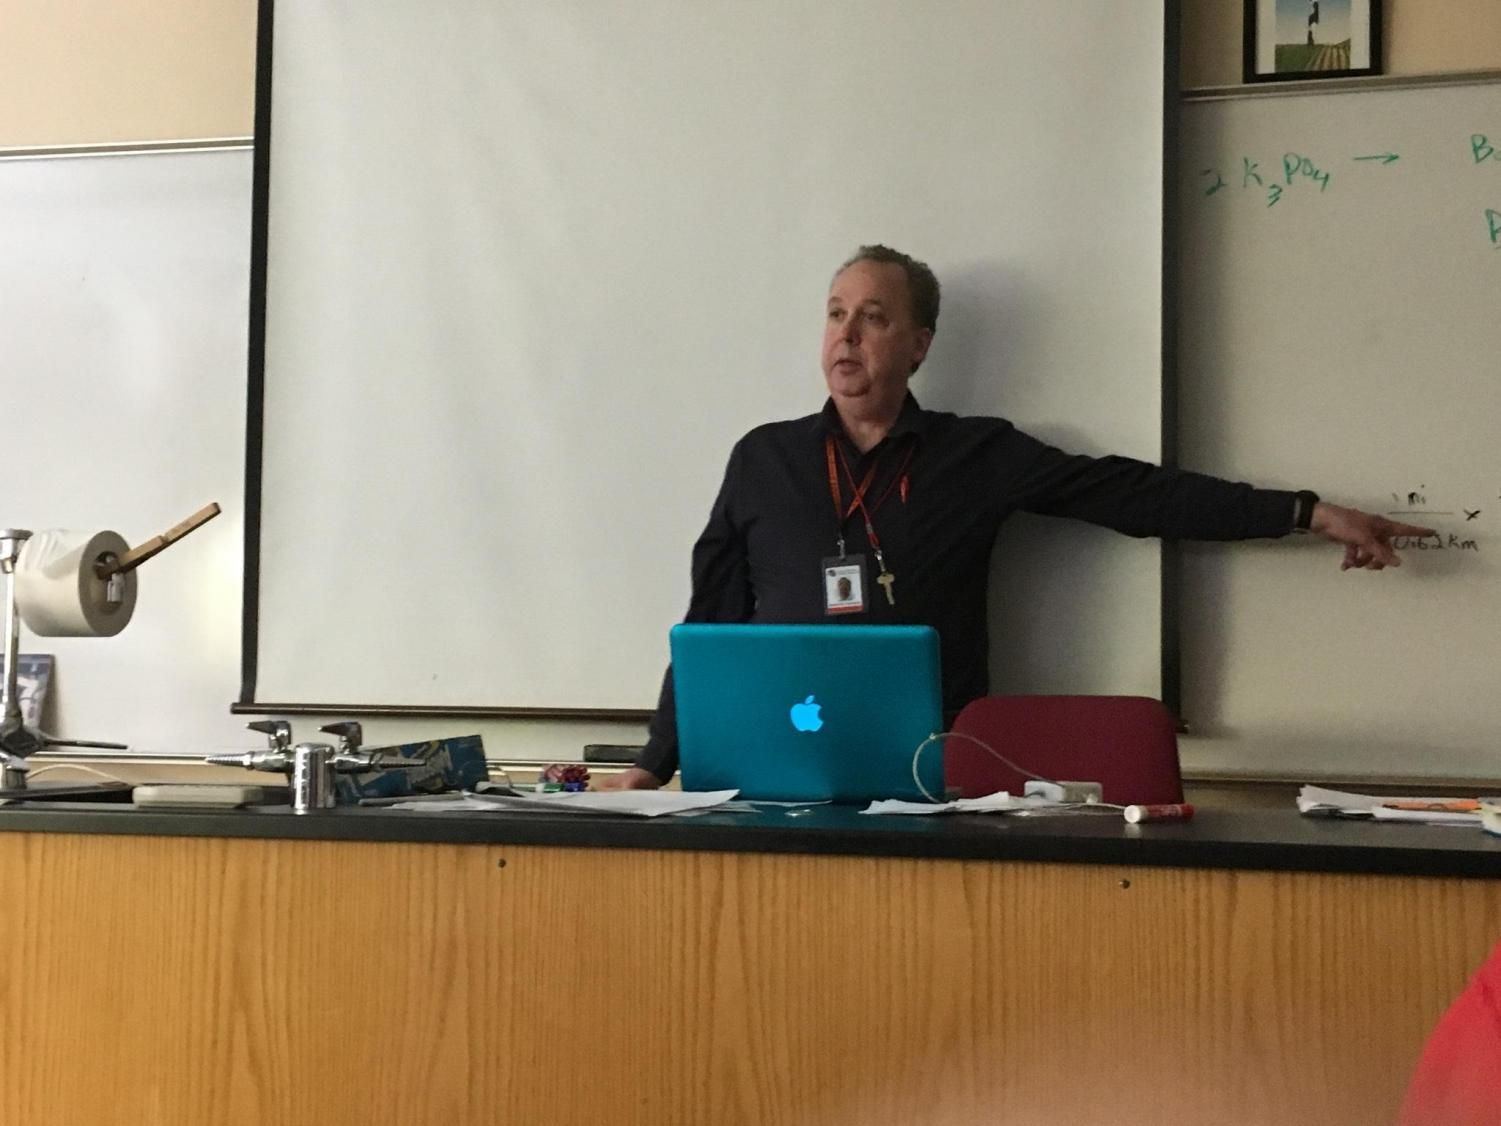 Chemistry teacher Patrick Puskala uses his Macbook Pro to teach class Feb. 2.